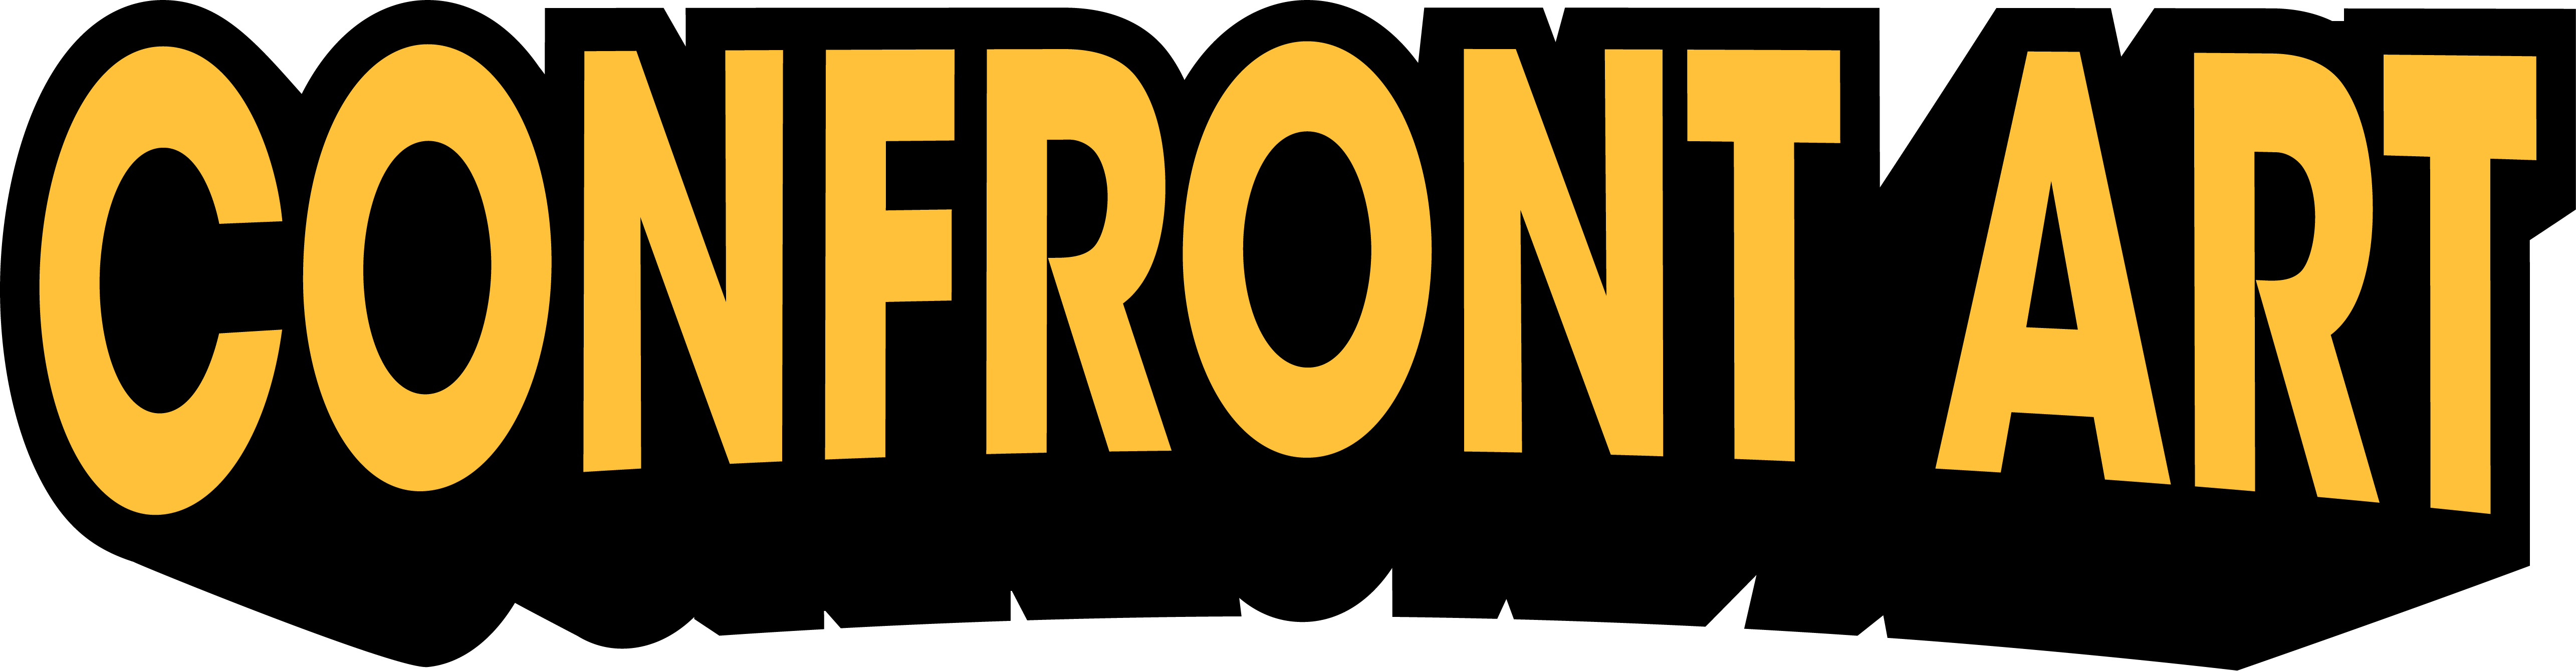 Confront Art Logo. Large Yellow And Black Text.